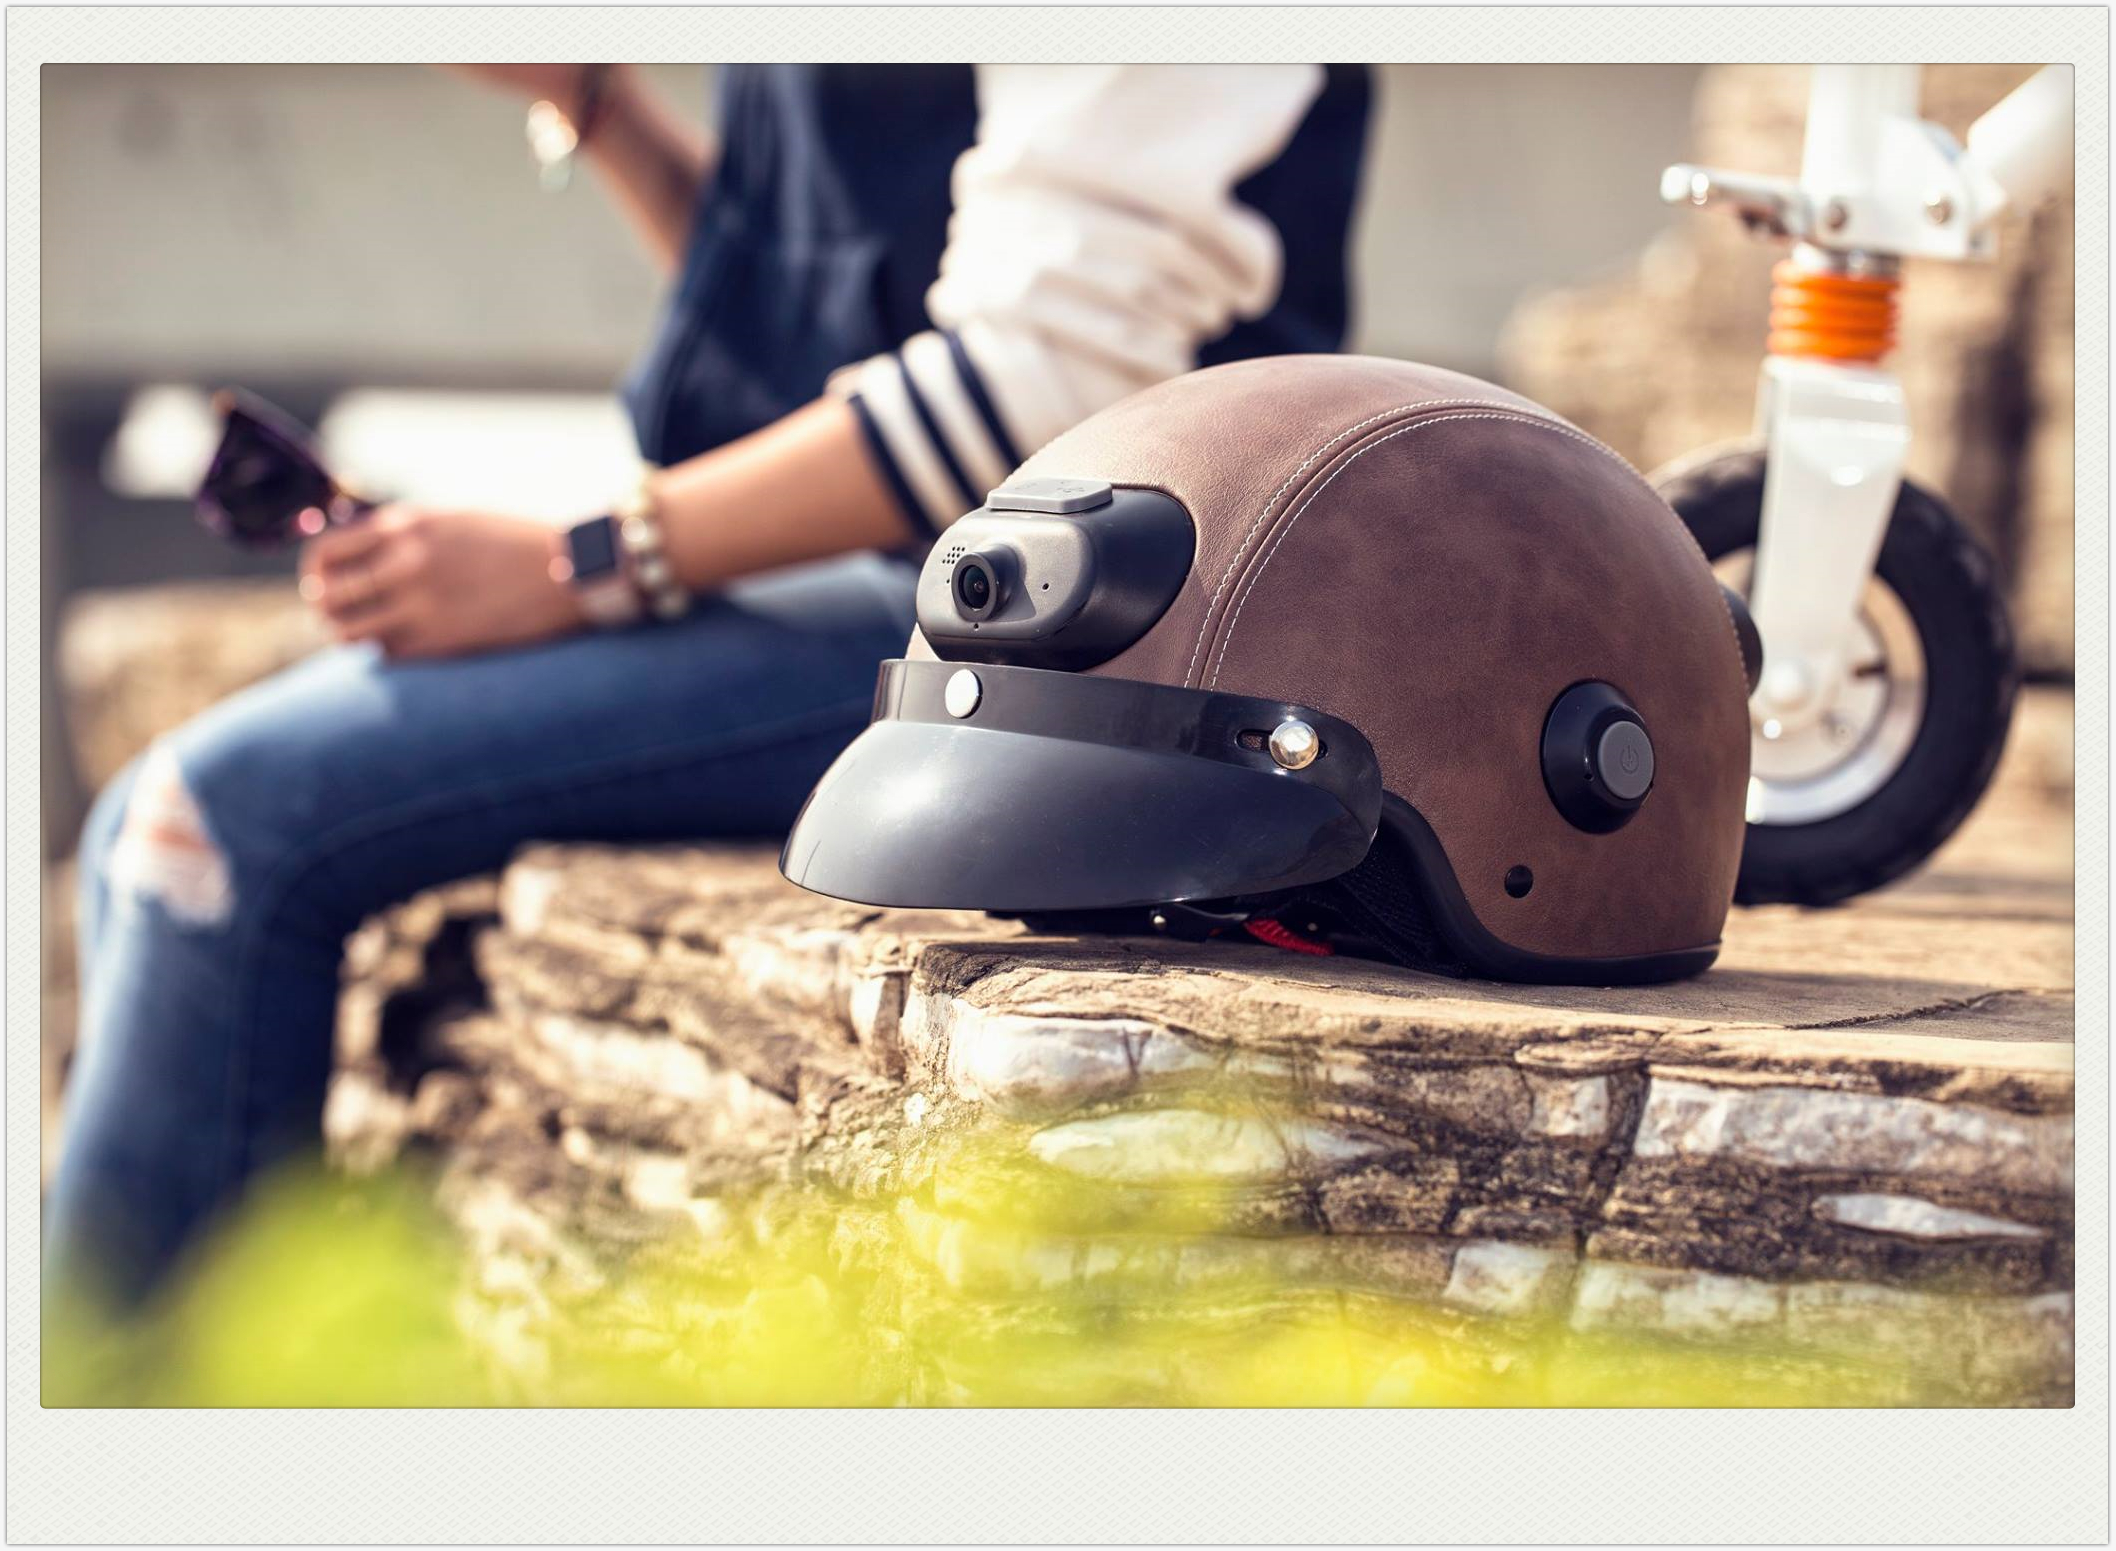 Airwheel C6 intelligent helmet